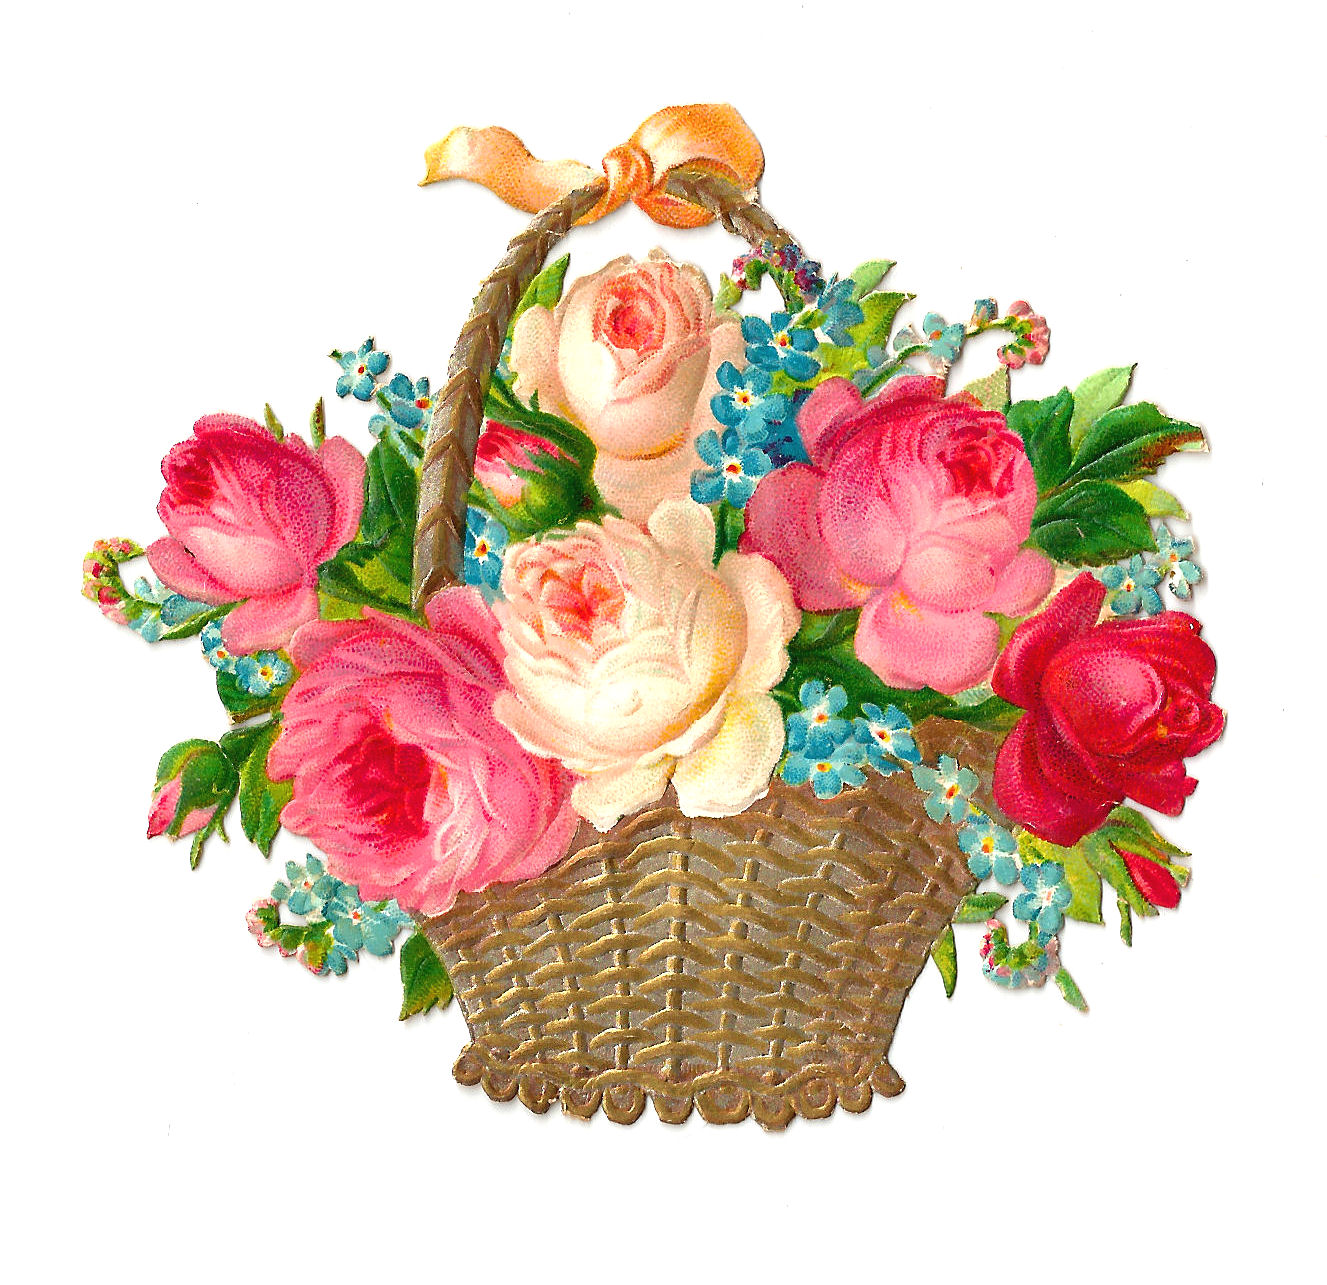 Flower Baskets Photos : Antique images free flower clip art vintage pink and red